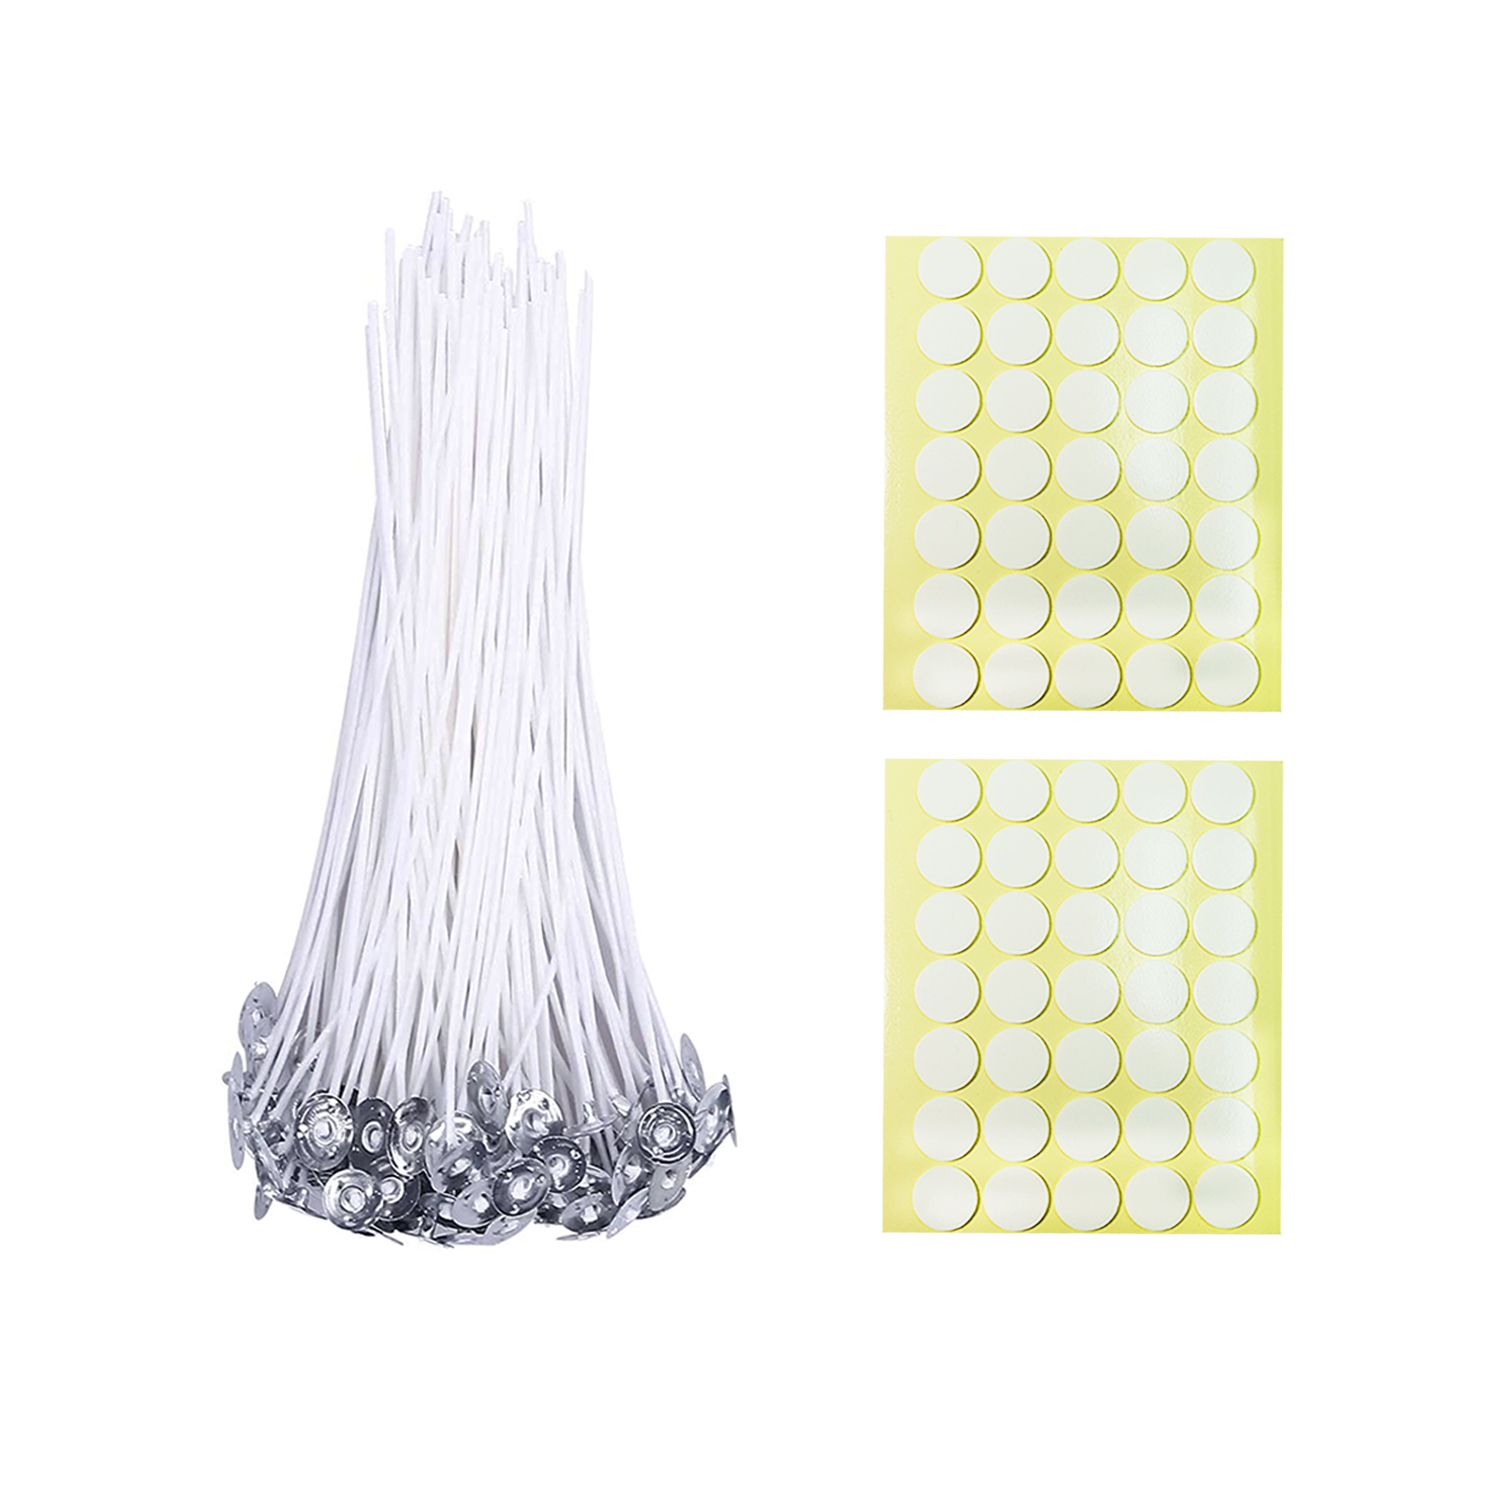 BEADNOVA Cotton Wicks with Candle Stickers for Candle Making DIY Supplies (Large, 8 Inch, 50pcs)